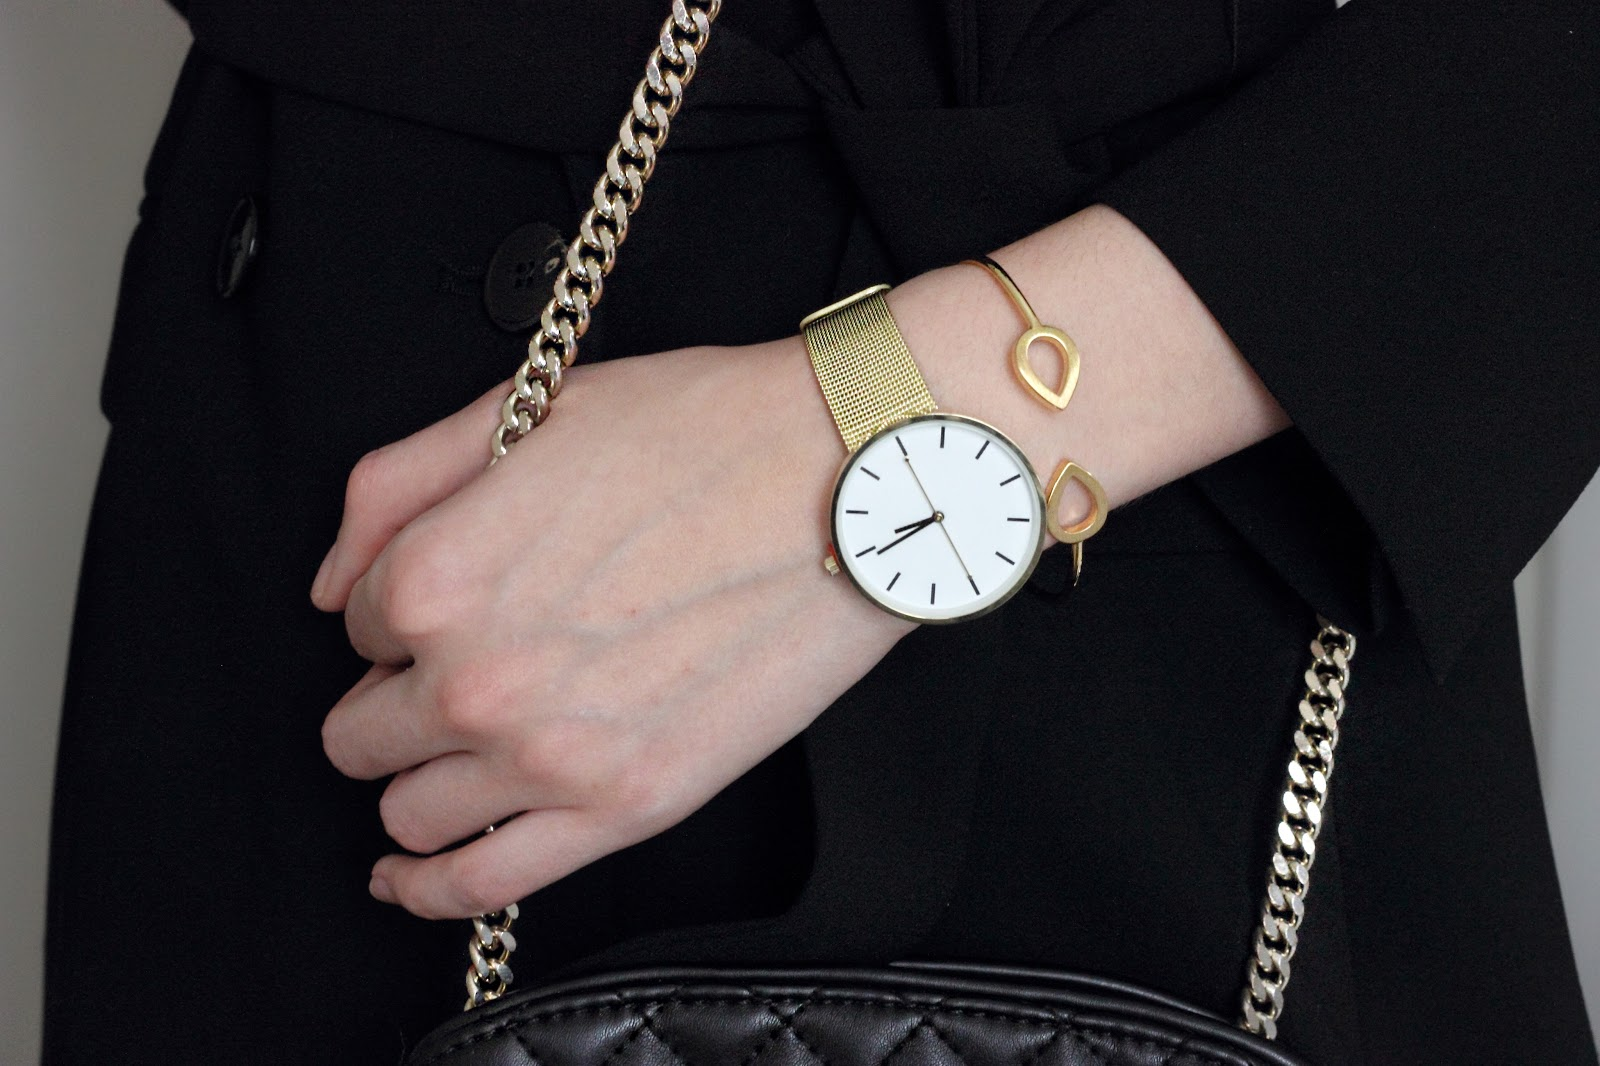 black on black, leather, padded, clutch bag, gold, gold detailing, gold watch, asos, gold bangle, kaytie wu, blog review, anasofiachic, minimalism, minimalistic, fashion trend, overlapping textures, blogger, fashion blogger, beauty blogger, british blogger, makeup blogger